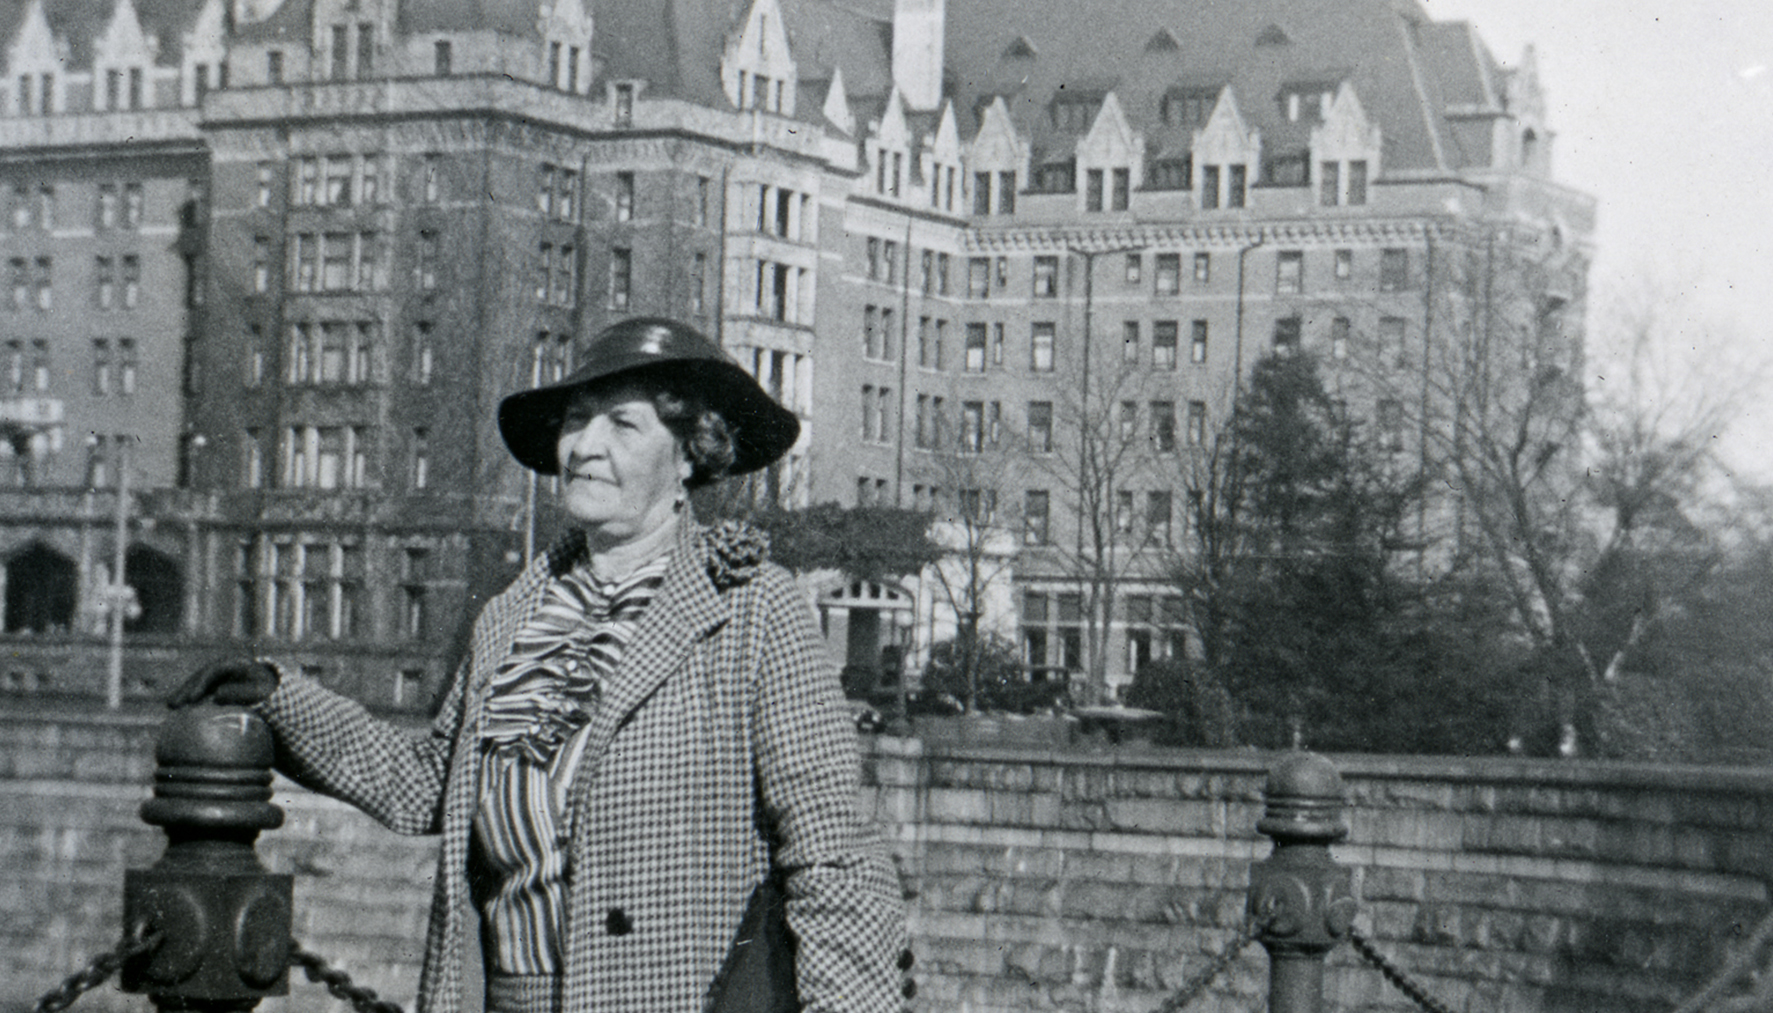 Florence Cottingham at the Fairmont Empress Hotel in Victoria, BC, ca. 1932